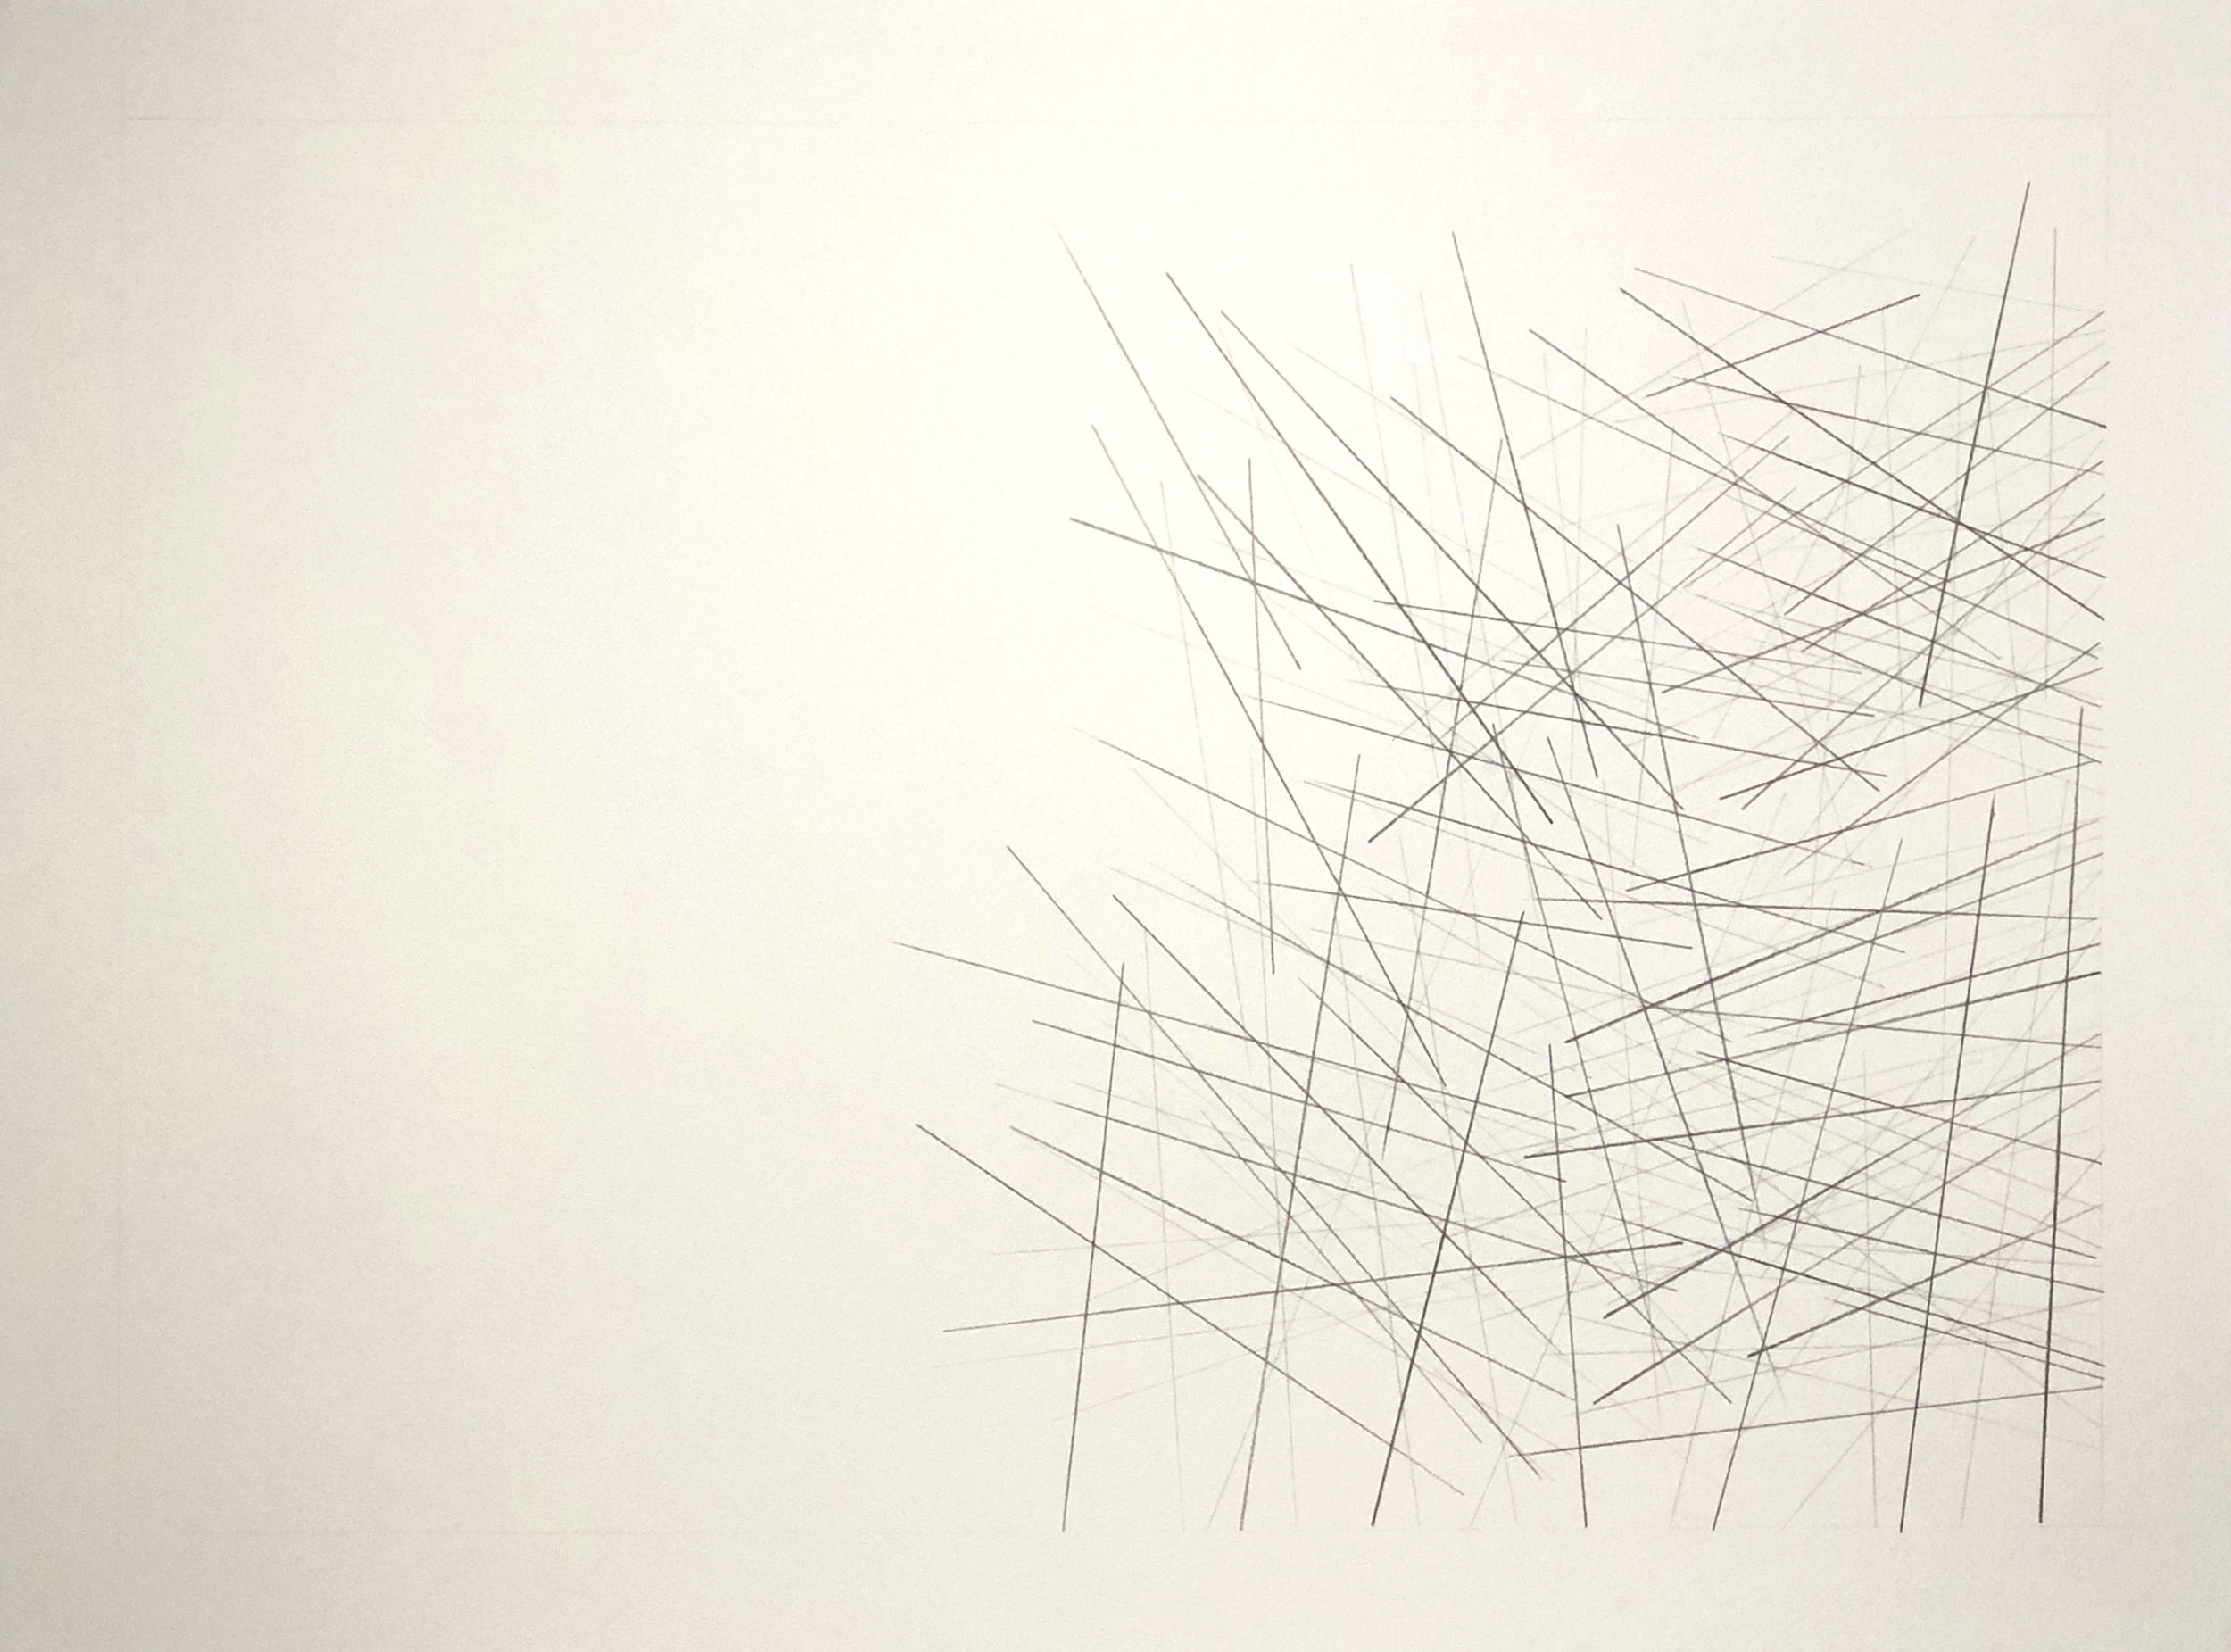 Anshun, China 26.2478, 105.9281,  2018  Graphite on paper  18H x 24W inches unframed  21.75H x 27.75W inches framed